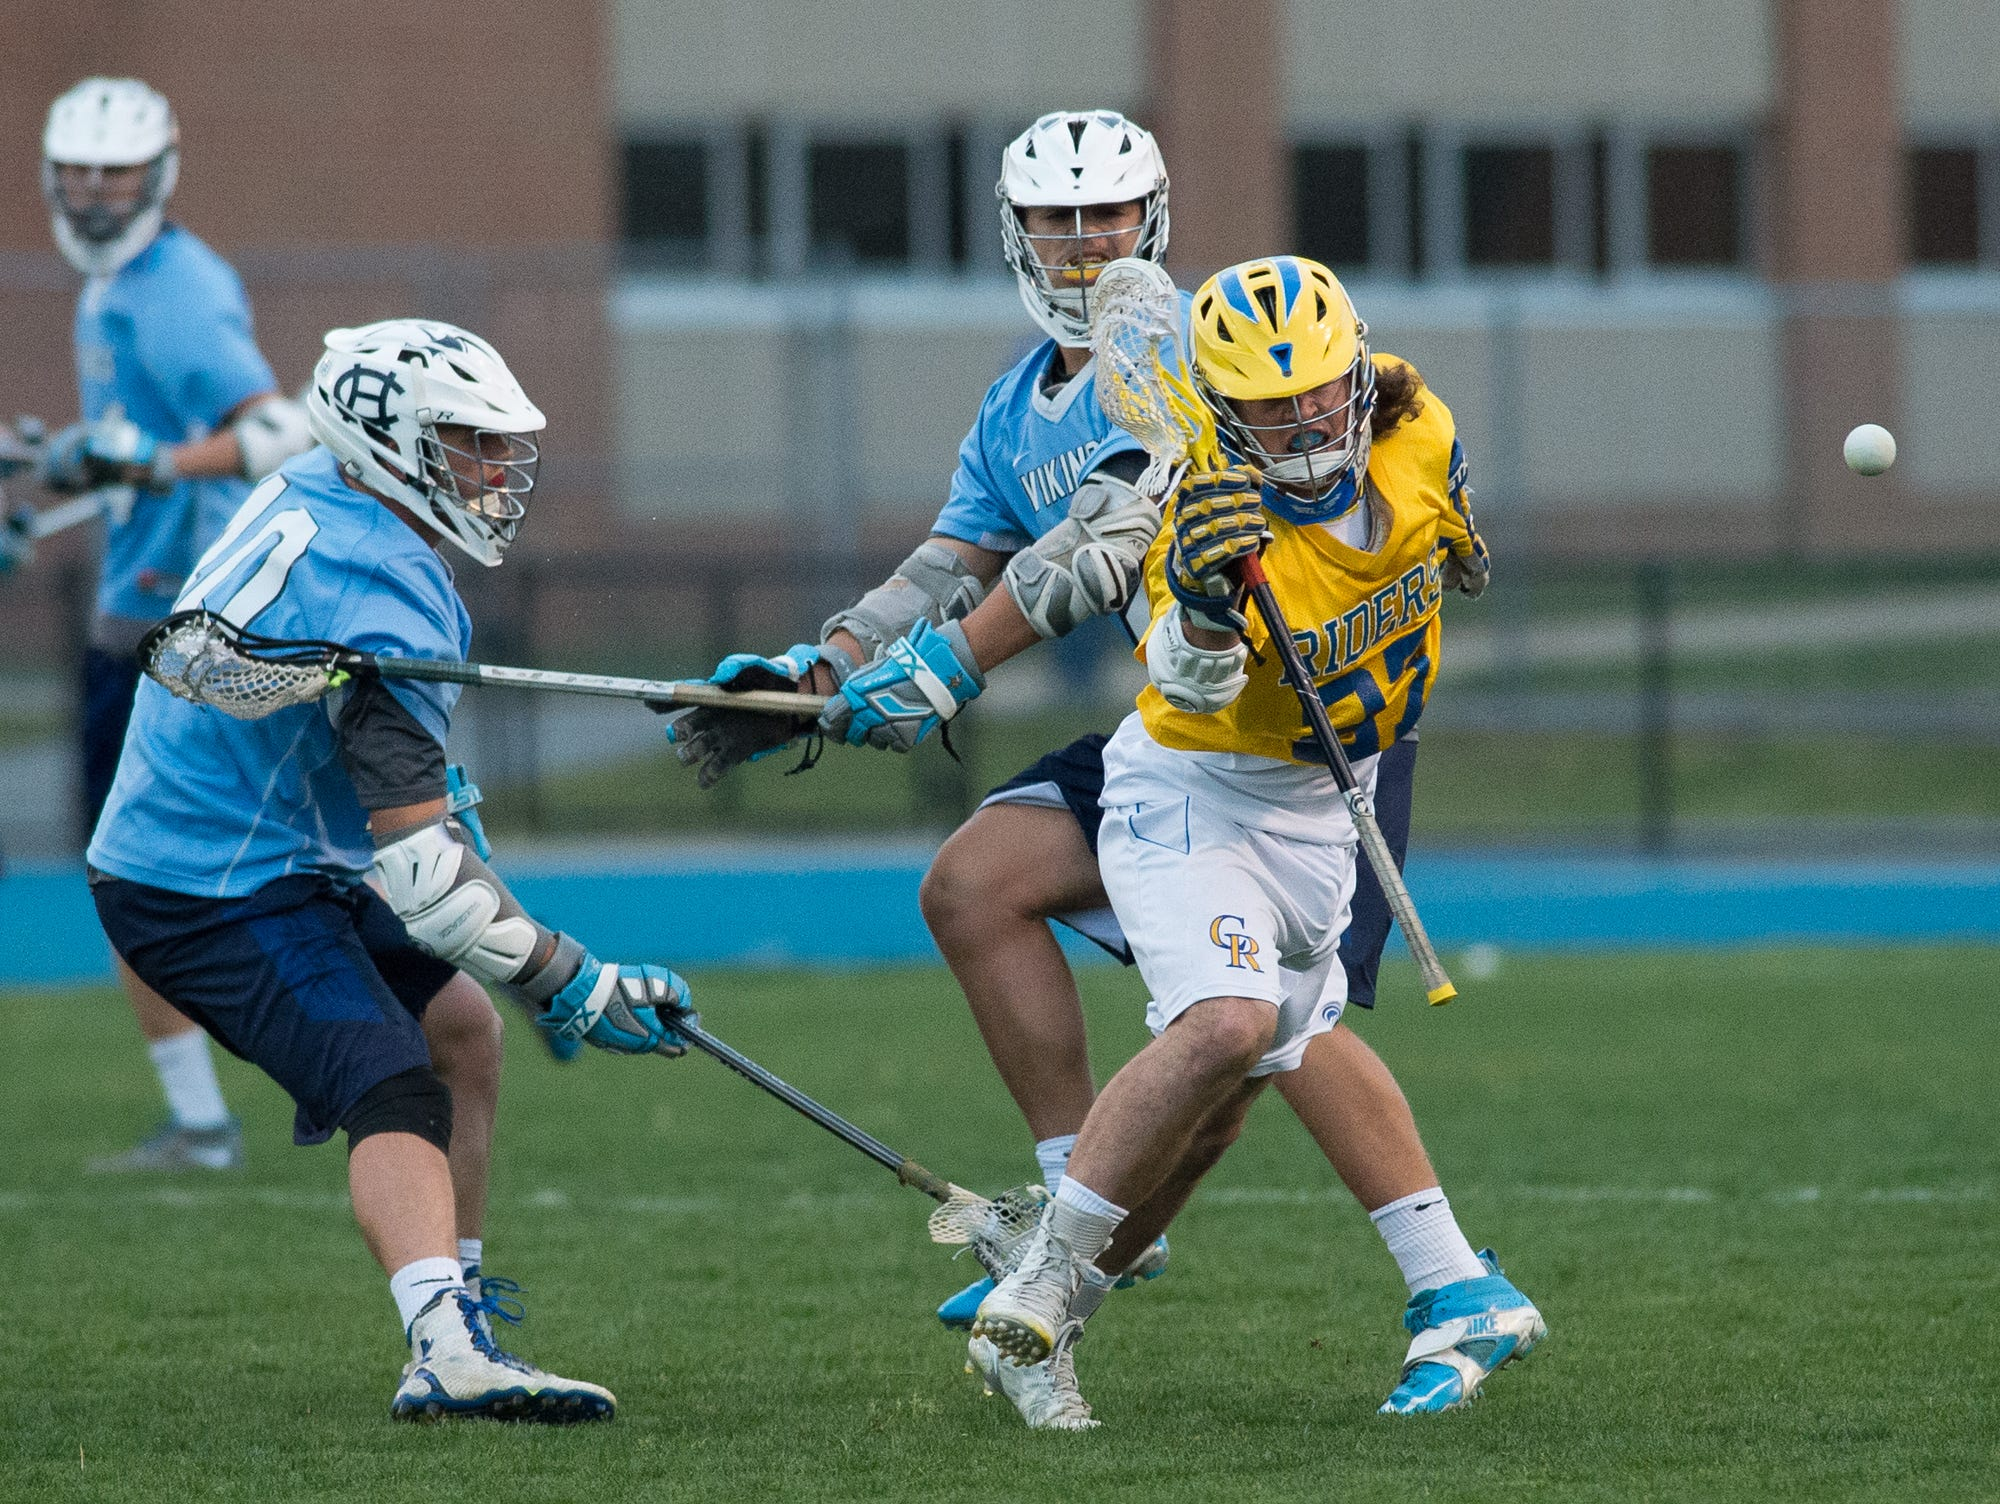 Caesar Rodney's Luke Rankin (27) looses control of the ball in their home game against Cape Henlopen.